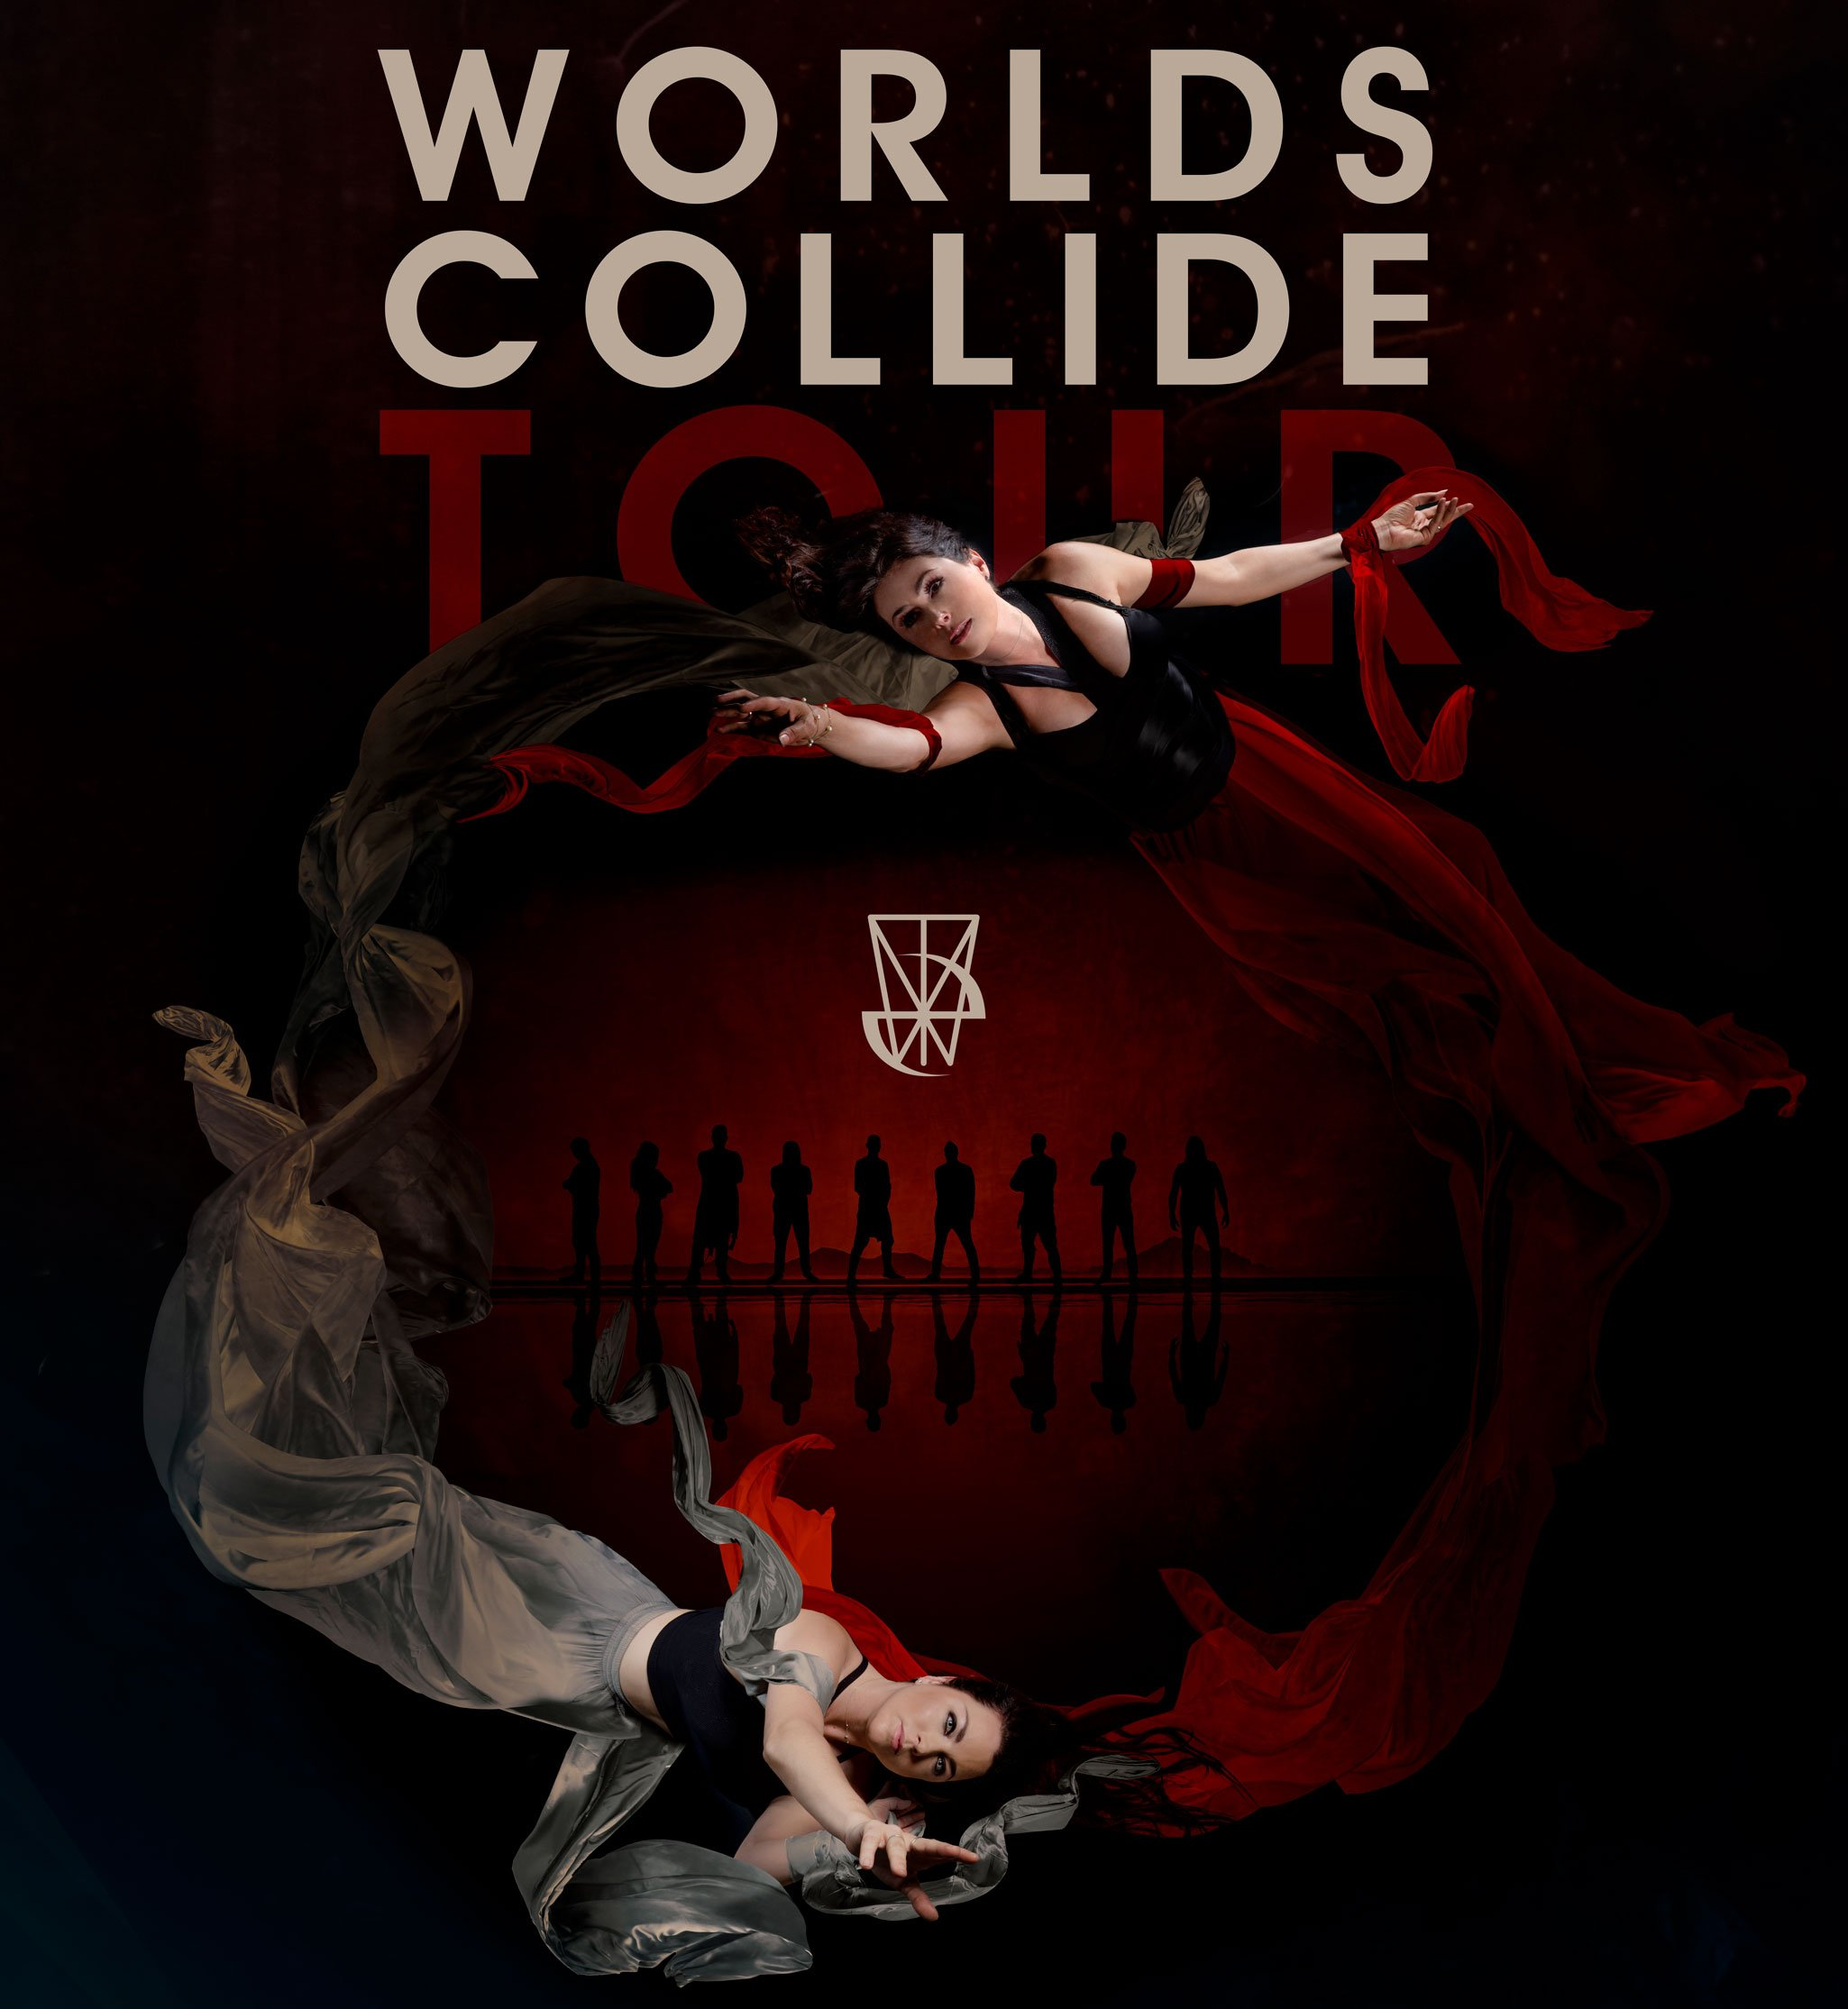 EVANESCENCE & WITHIN TEMPTATION have joined forces forWORLDS COLLIDE, a massive co-headline European tour 3